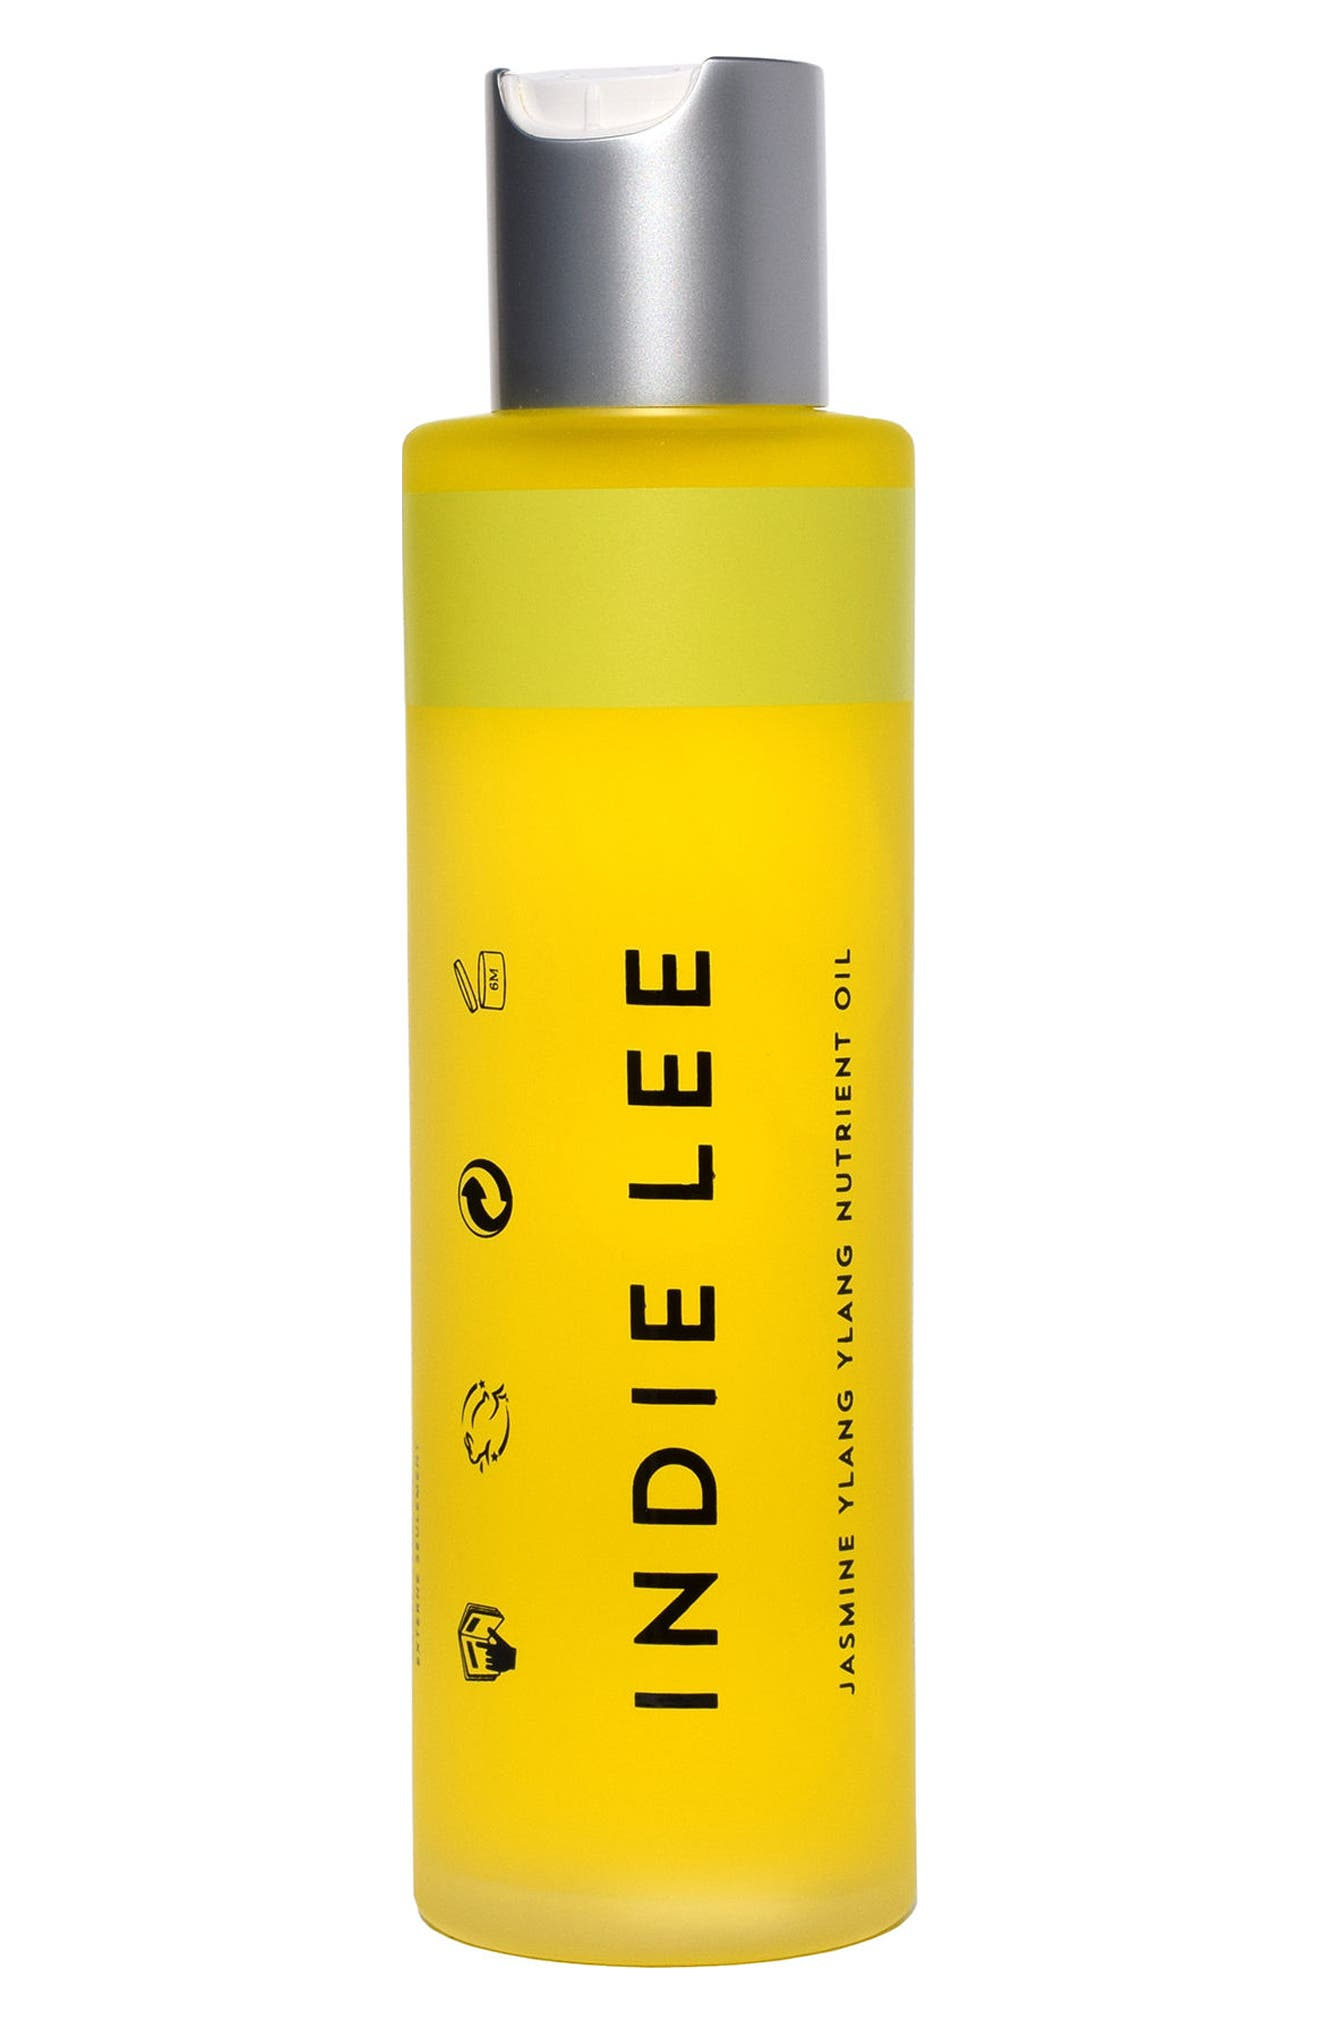 Alternate Image 1 Selected - Indie Lee Jasmine Ylang Ylang Nutrient Oil